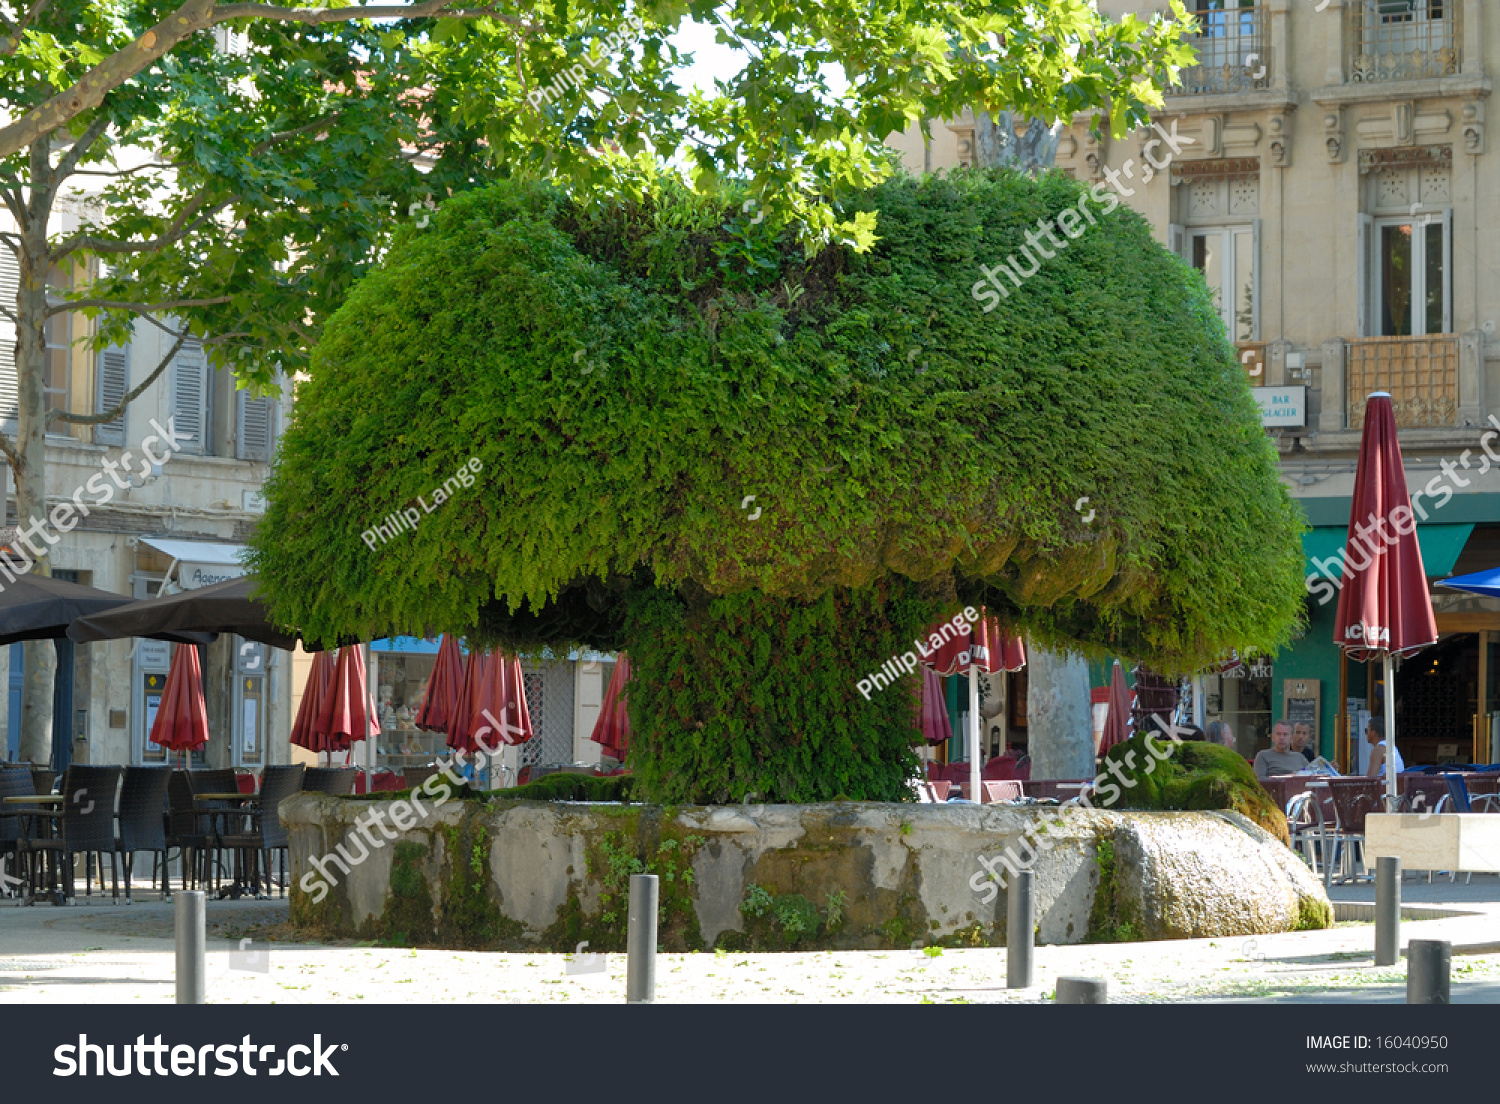 fontaine moussue in salon de provence france stock photo 16040950 shutterstock. Black Bedroom Furniture Sets. Home Design Ideas